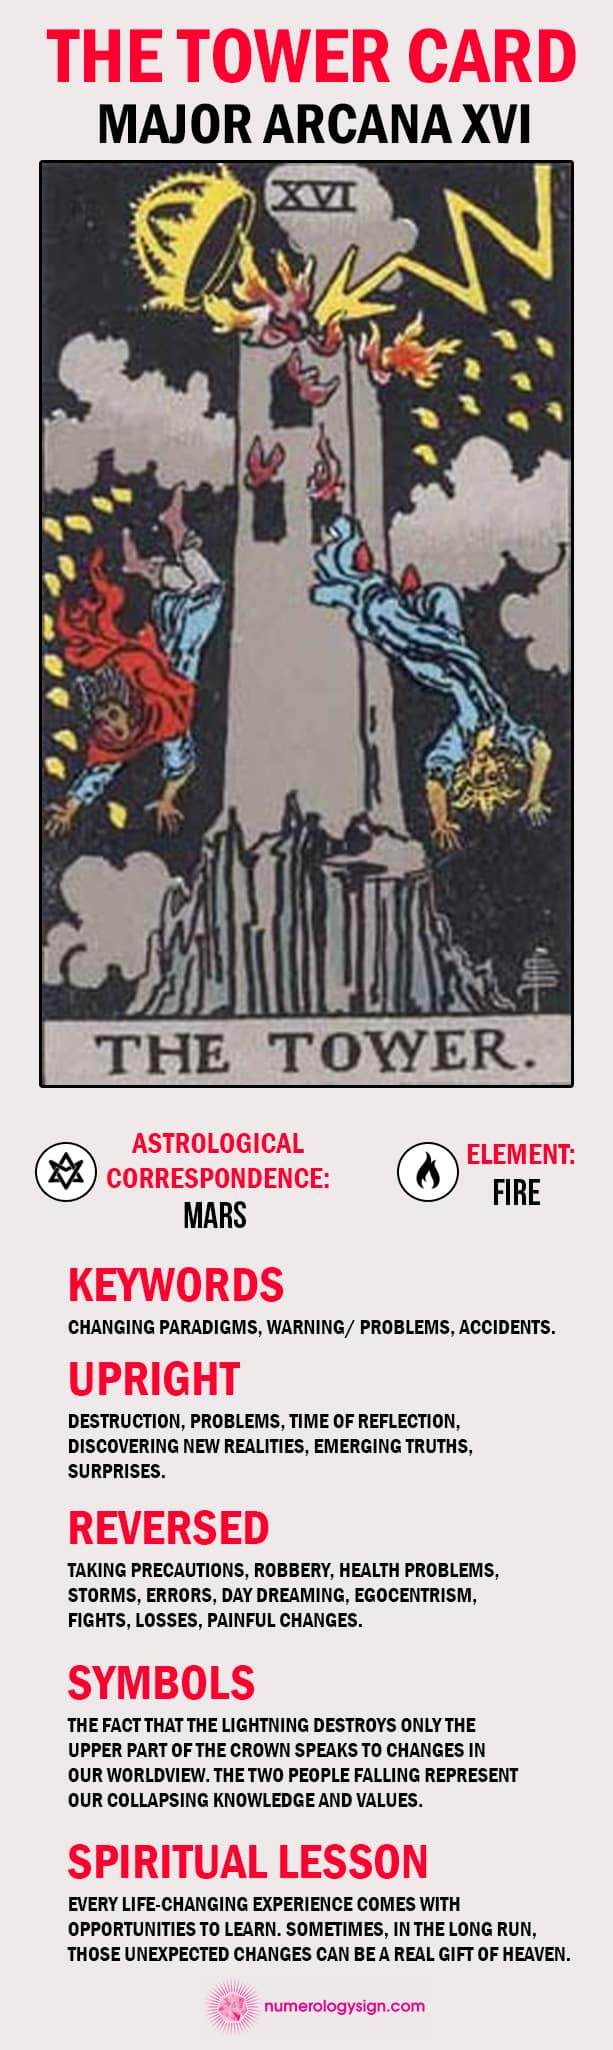 The Tower Tarot Card Meaning Infographic